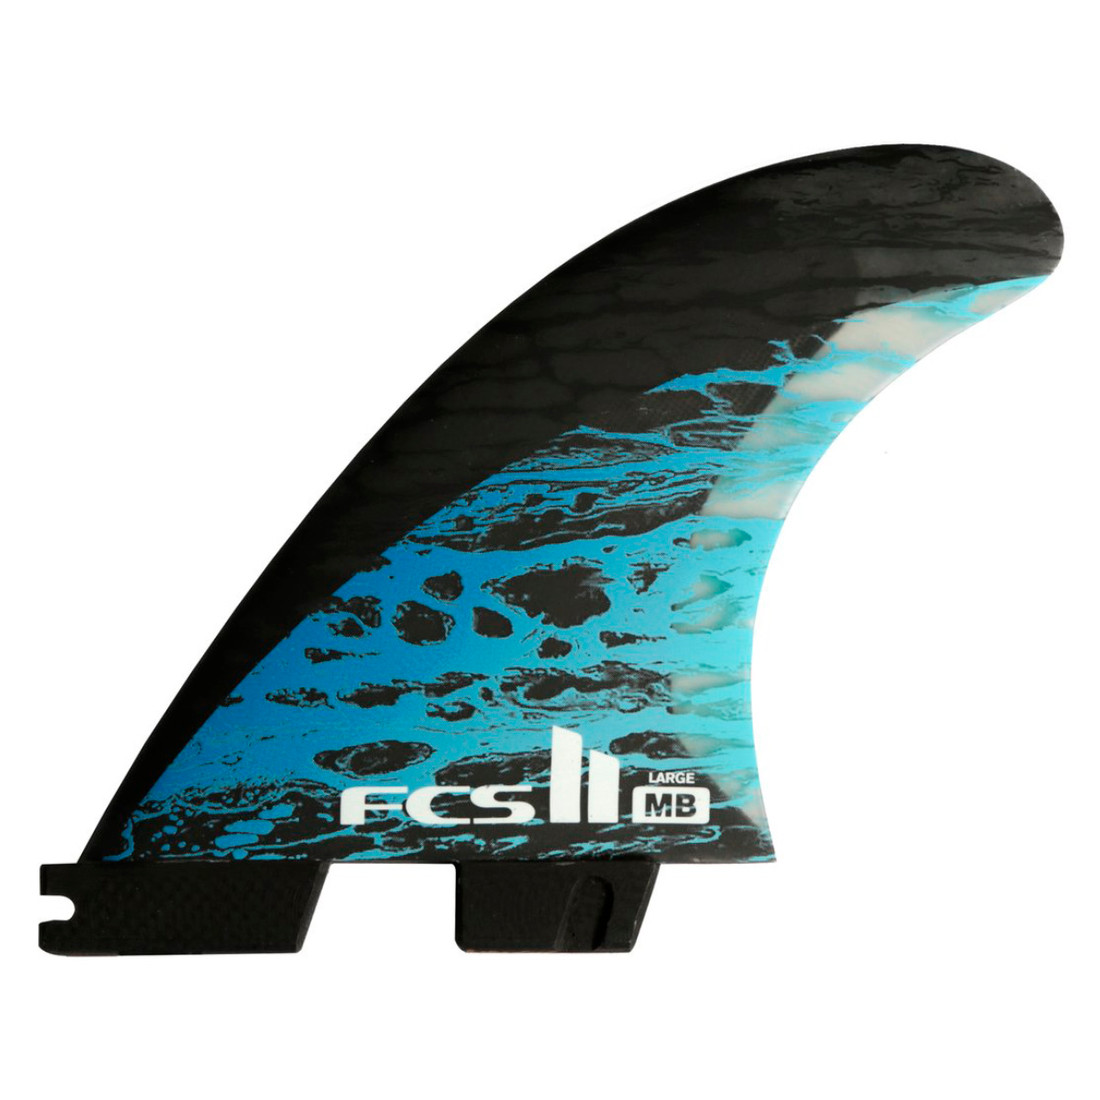 Quilha FCS II MB Large - PC Carbon